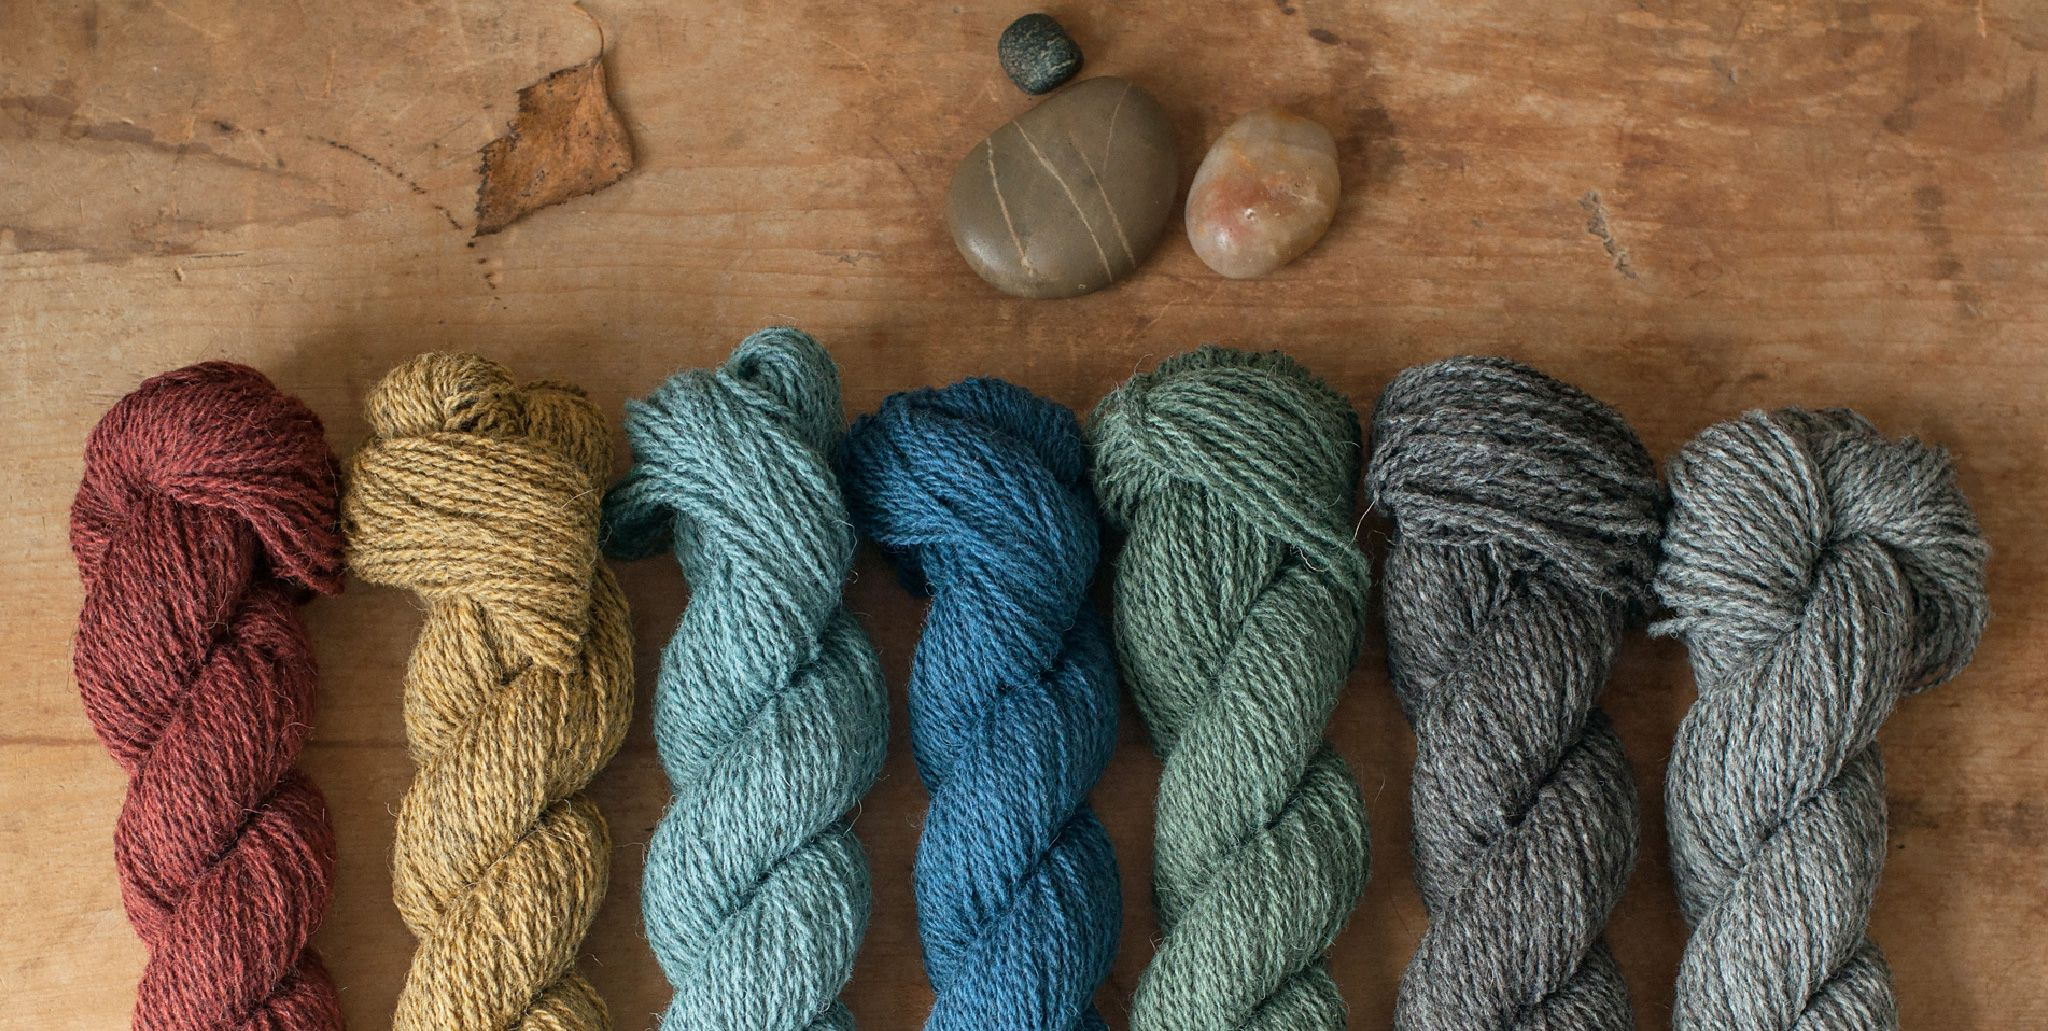 Wool, cotton and other natural yarns and pretty knitting patterns ...